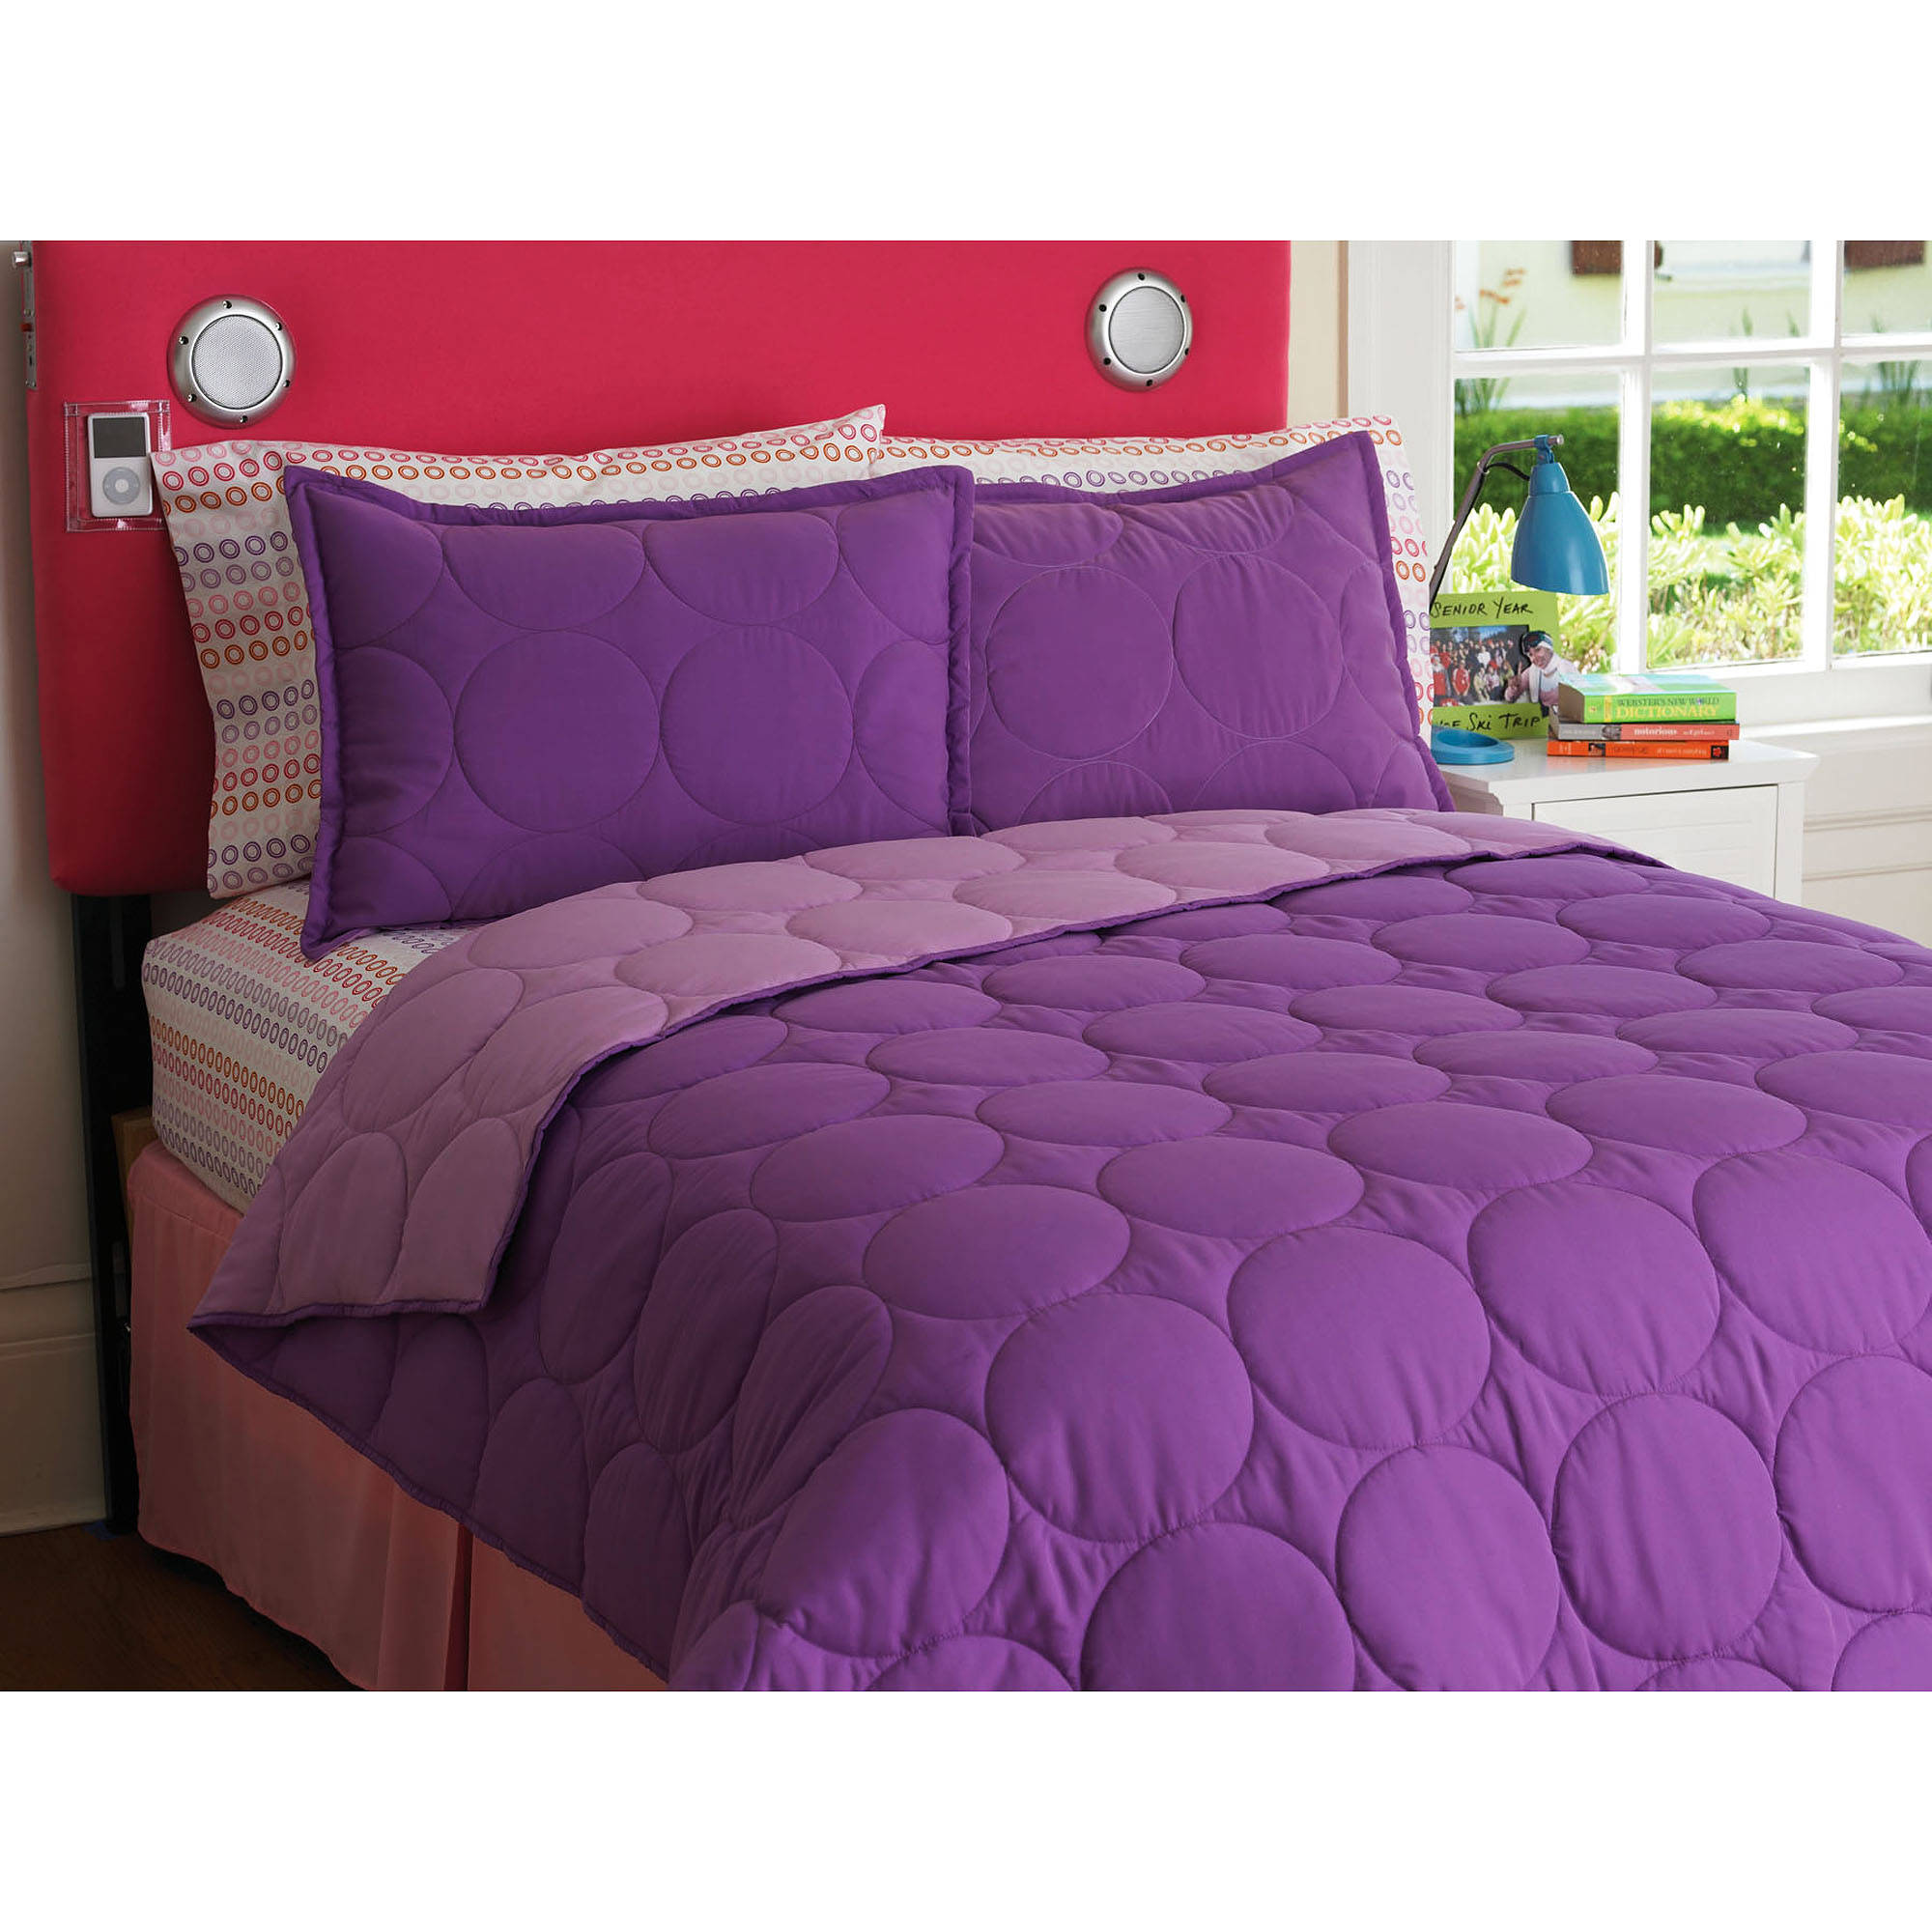 Your Zone Reversible Comforter and Sham Set, Purple Berry/Iris Size Twin